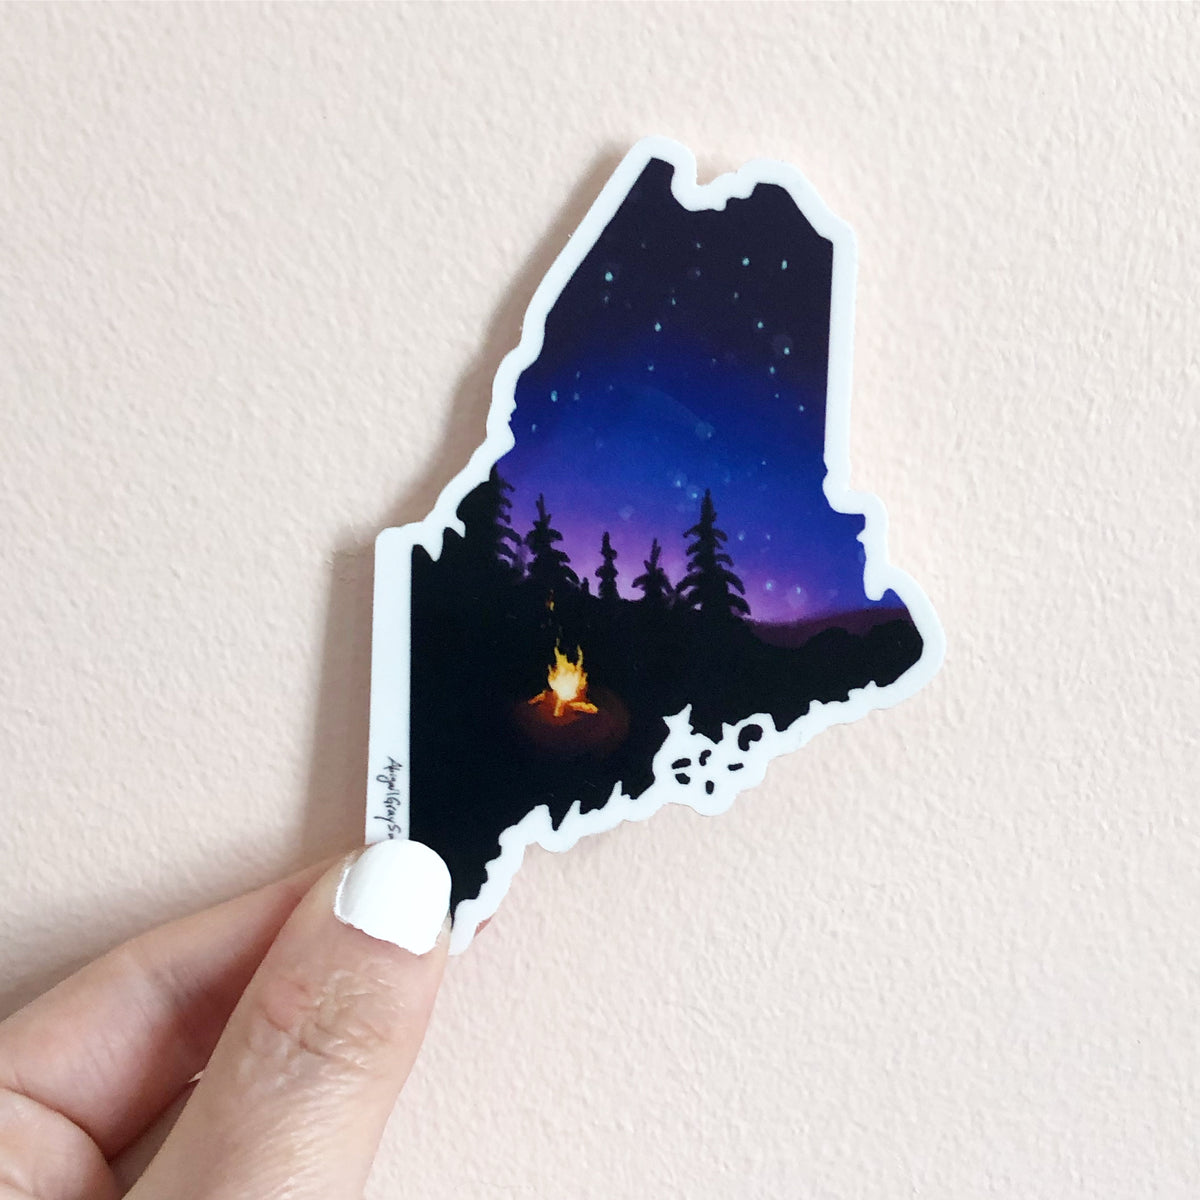 Maine night sky sticker, state of Maine shaped STICKER - Stickers & Magnets